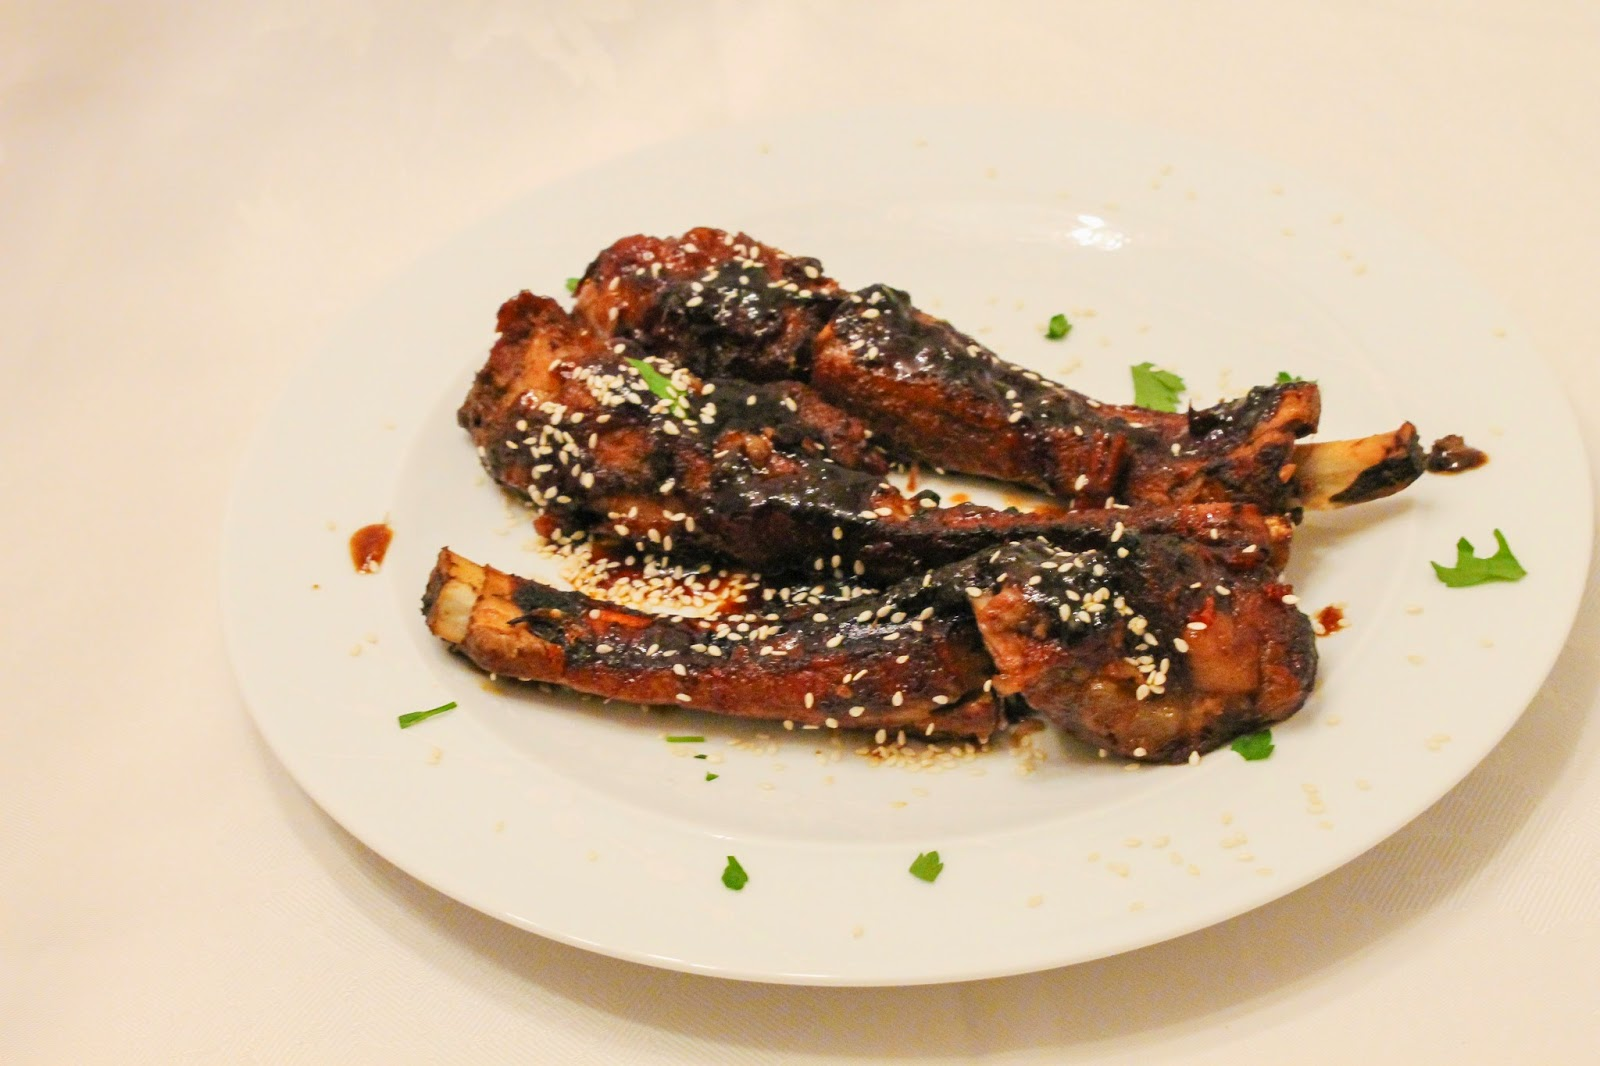 The bes pork ribs